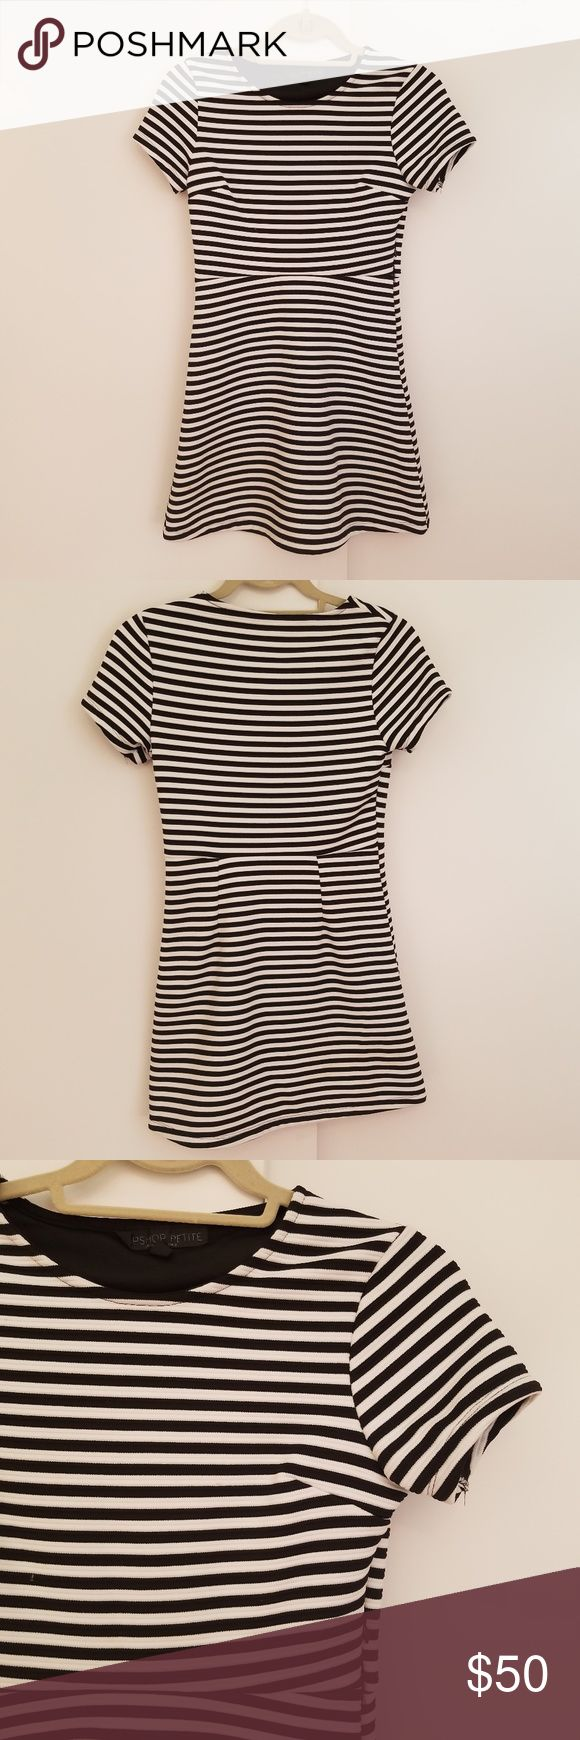 Topshop black white striped dress sz 4 Black and white striped mini dress size 4 petite topshop petite has tiny stain that is not visible when worn (shown in photo) pre-owned but in almost perfect condition short-sleeve  pit to pit: 15 inches length: 29.5 inches Topshop PETITE Dresses Mini